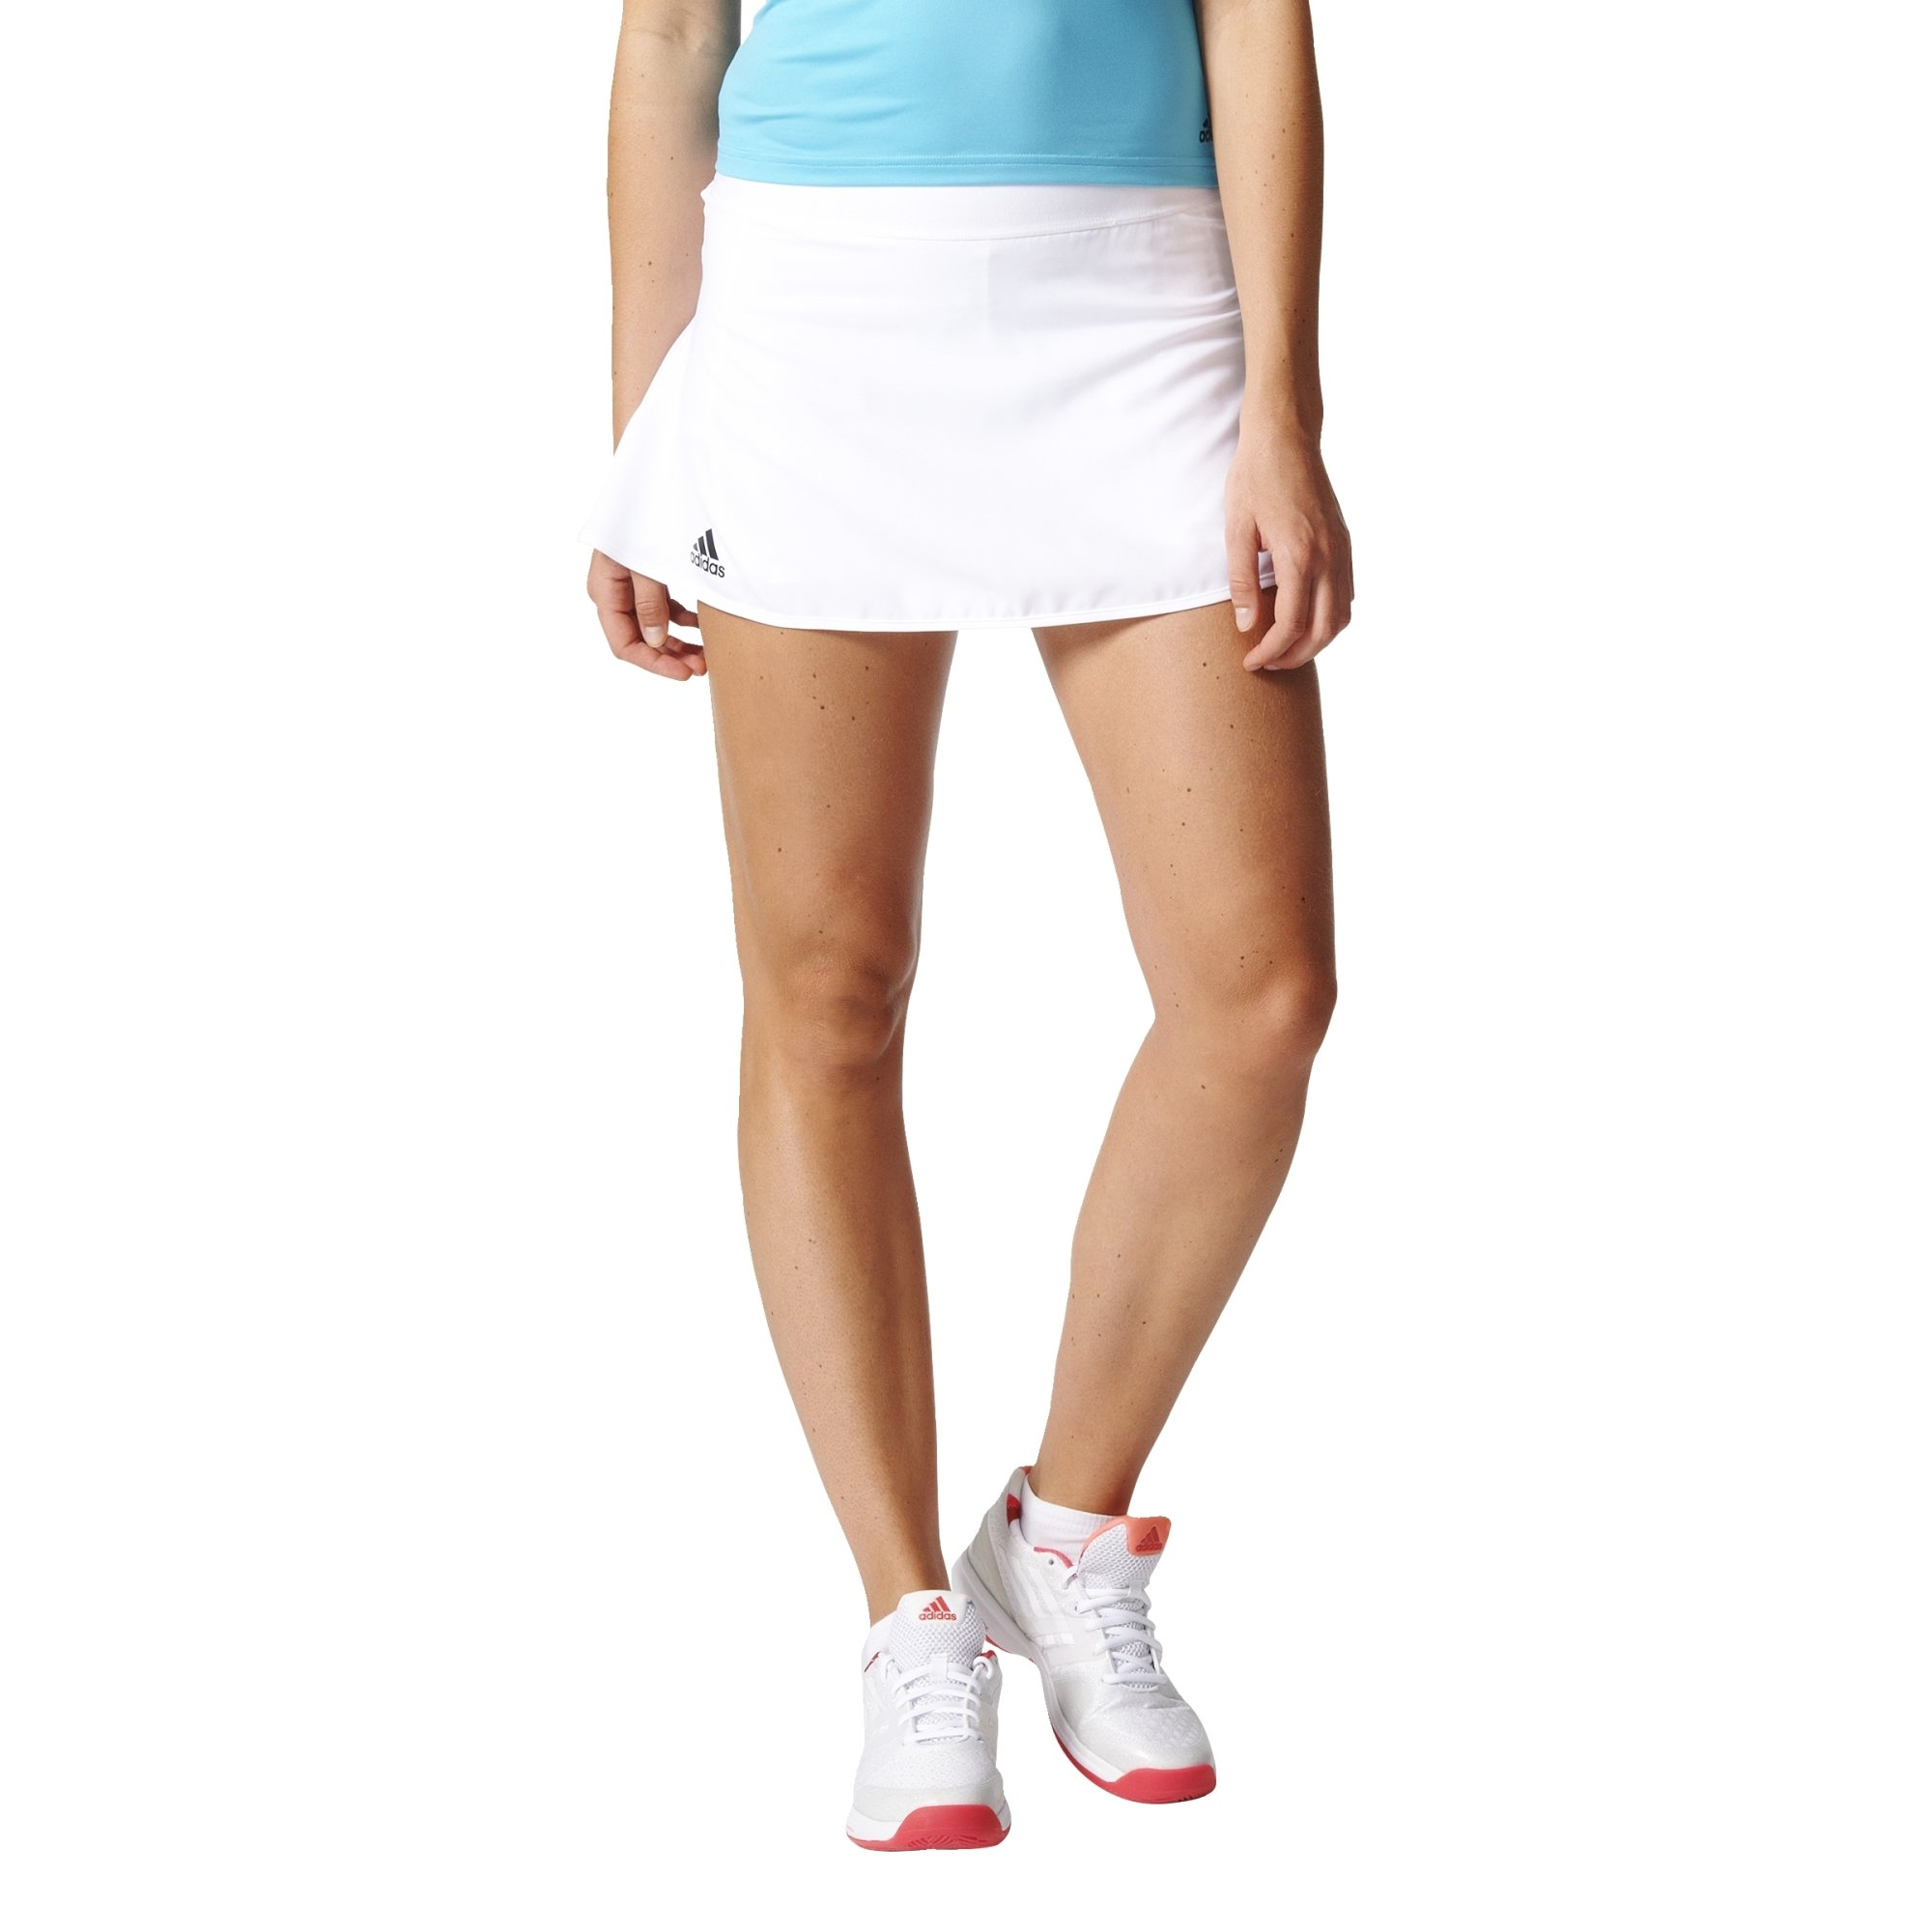 adidas Women's Tennis Club Skirt, White, Large